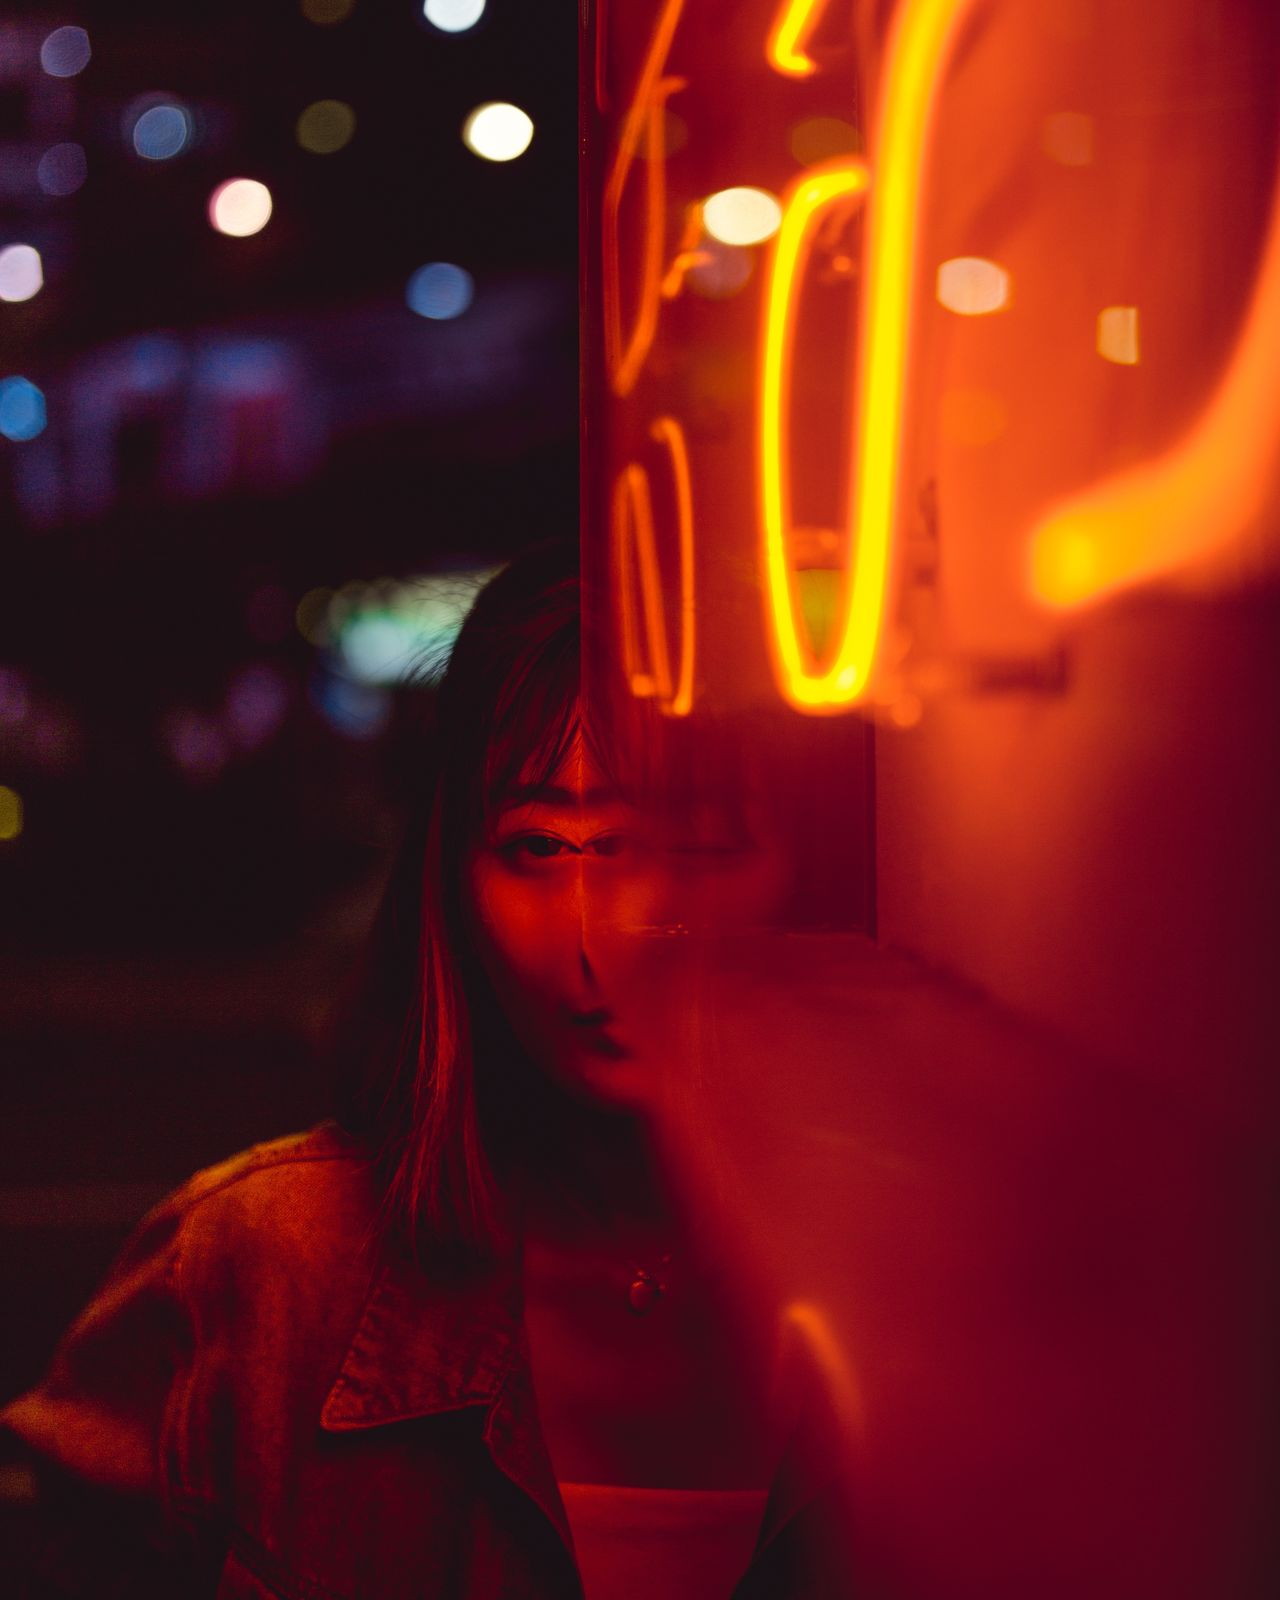 cyclops Red Illuminated Neon Close-up City Street Portrait Photography Portrait Of A Woman Portrait Of A Girl Portraits Of EyeEm Light Light And Shadow Red Weird Distorted Faces Optical Illusions